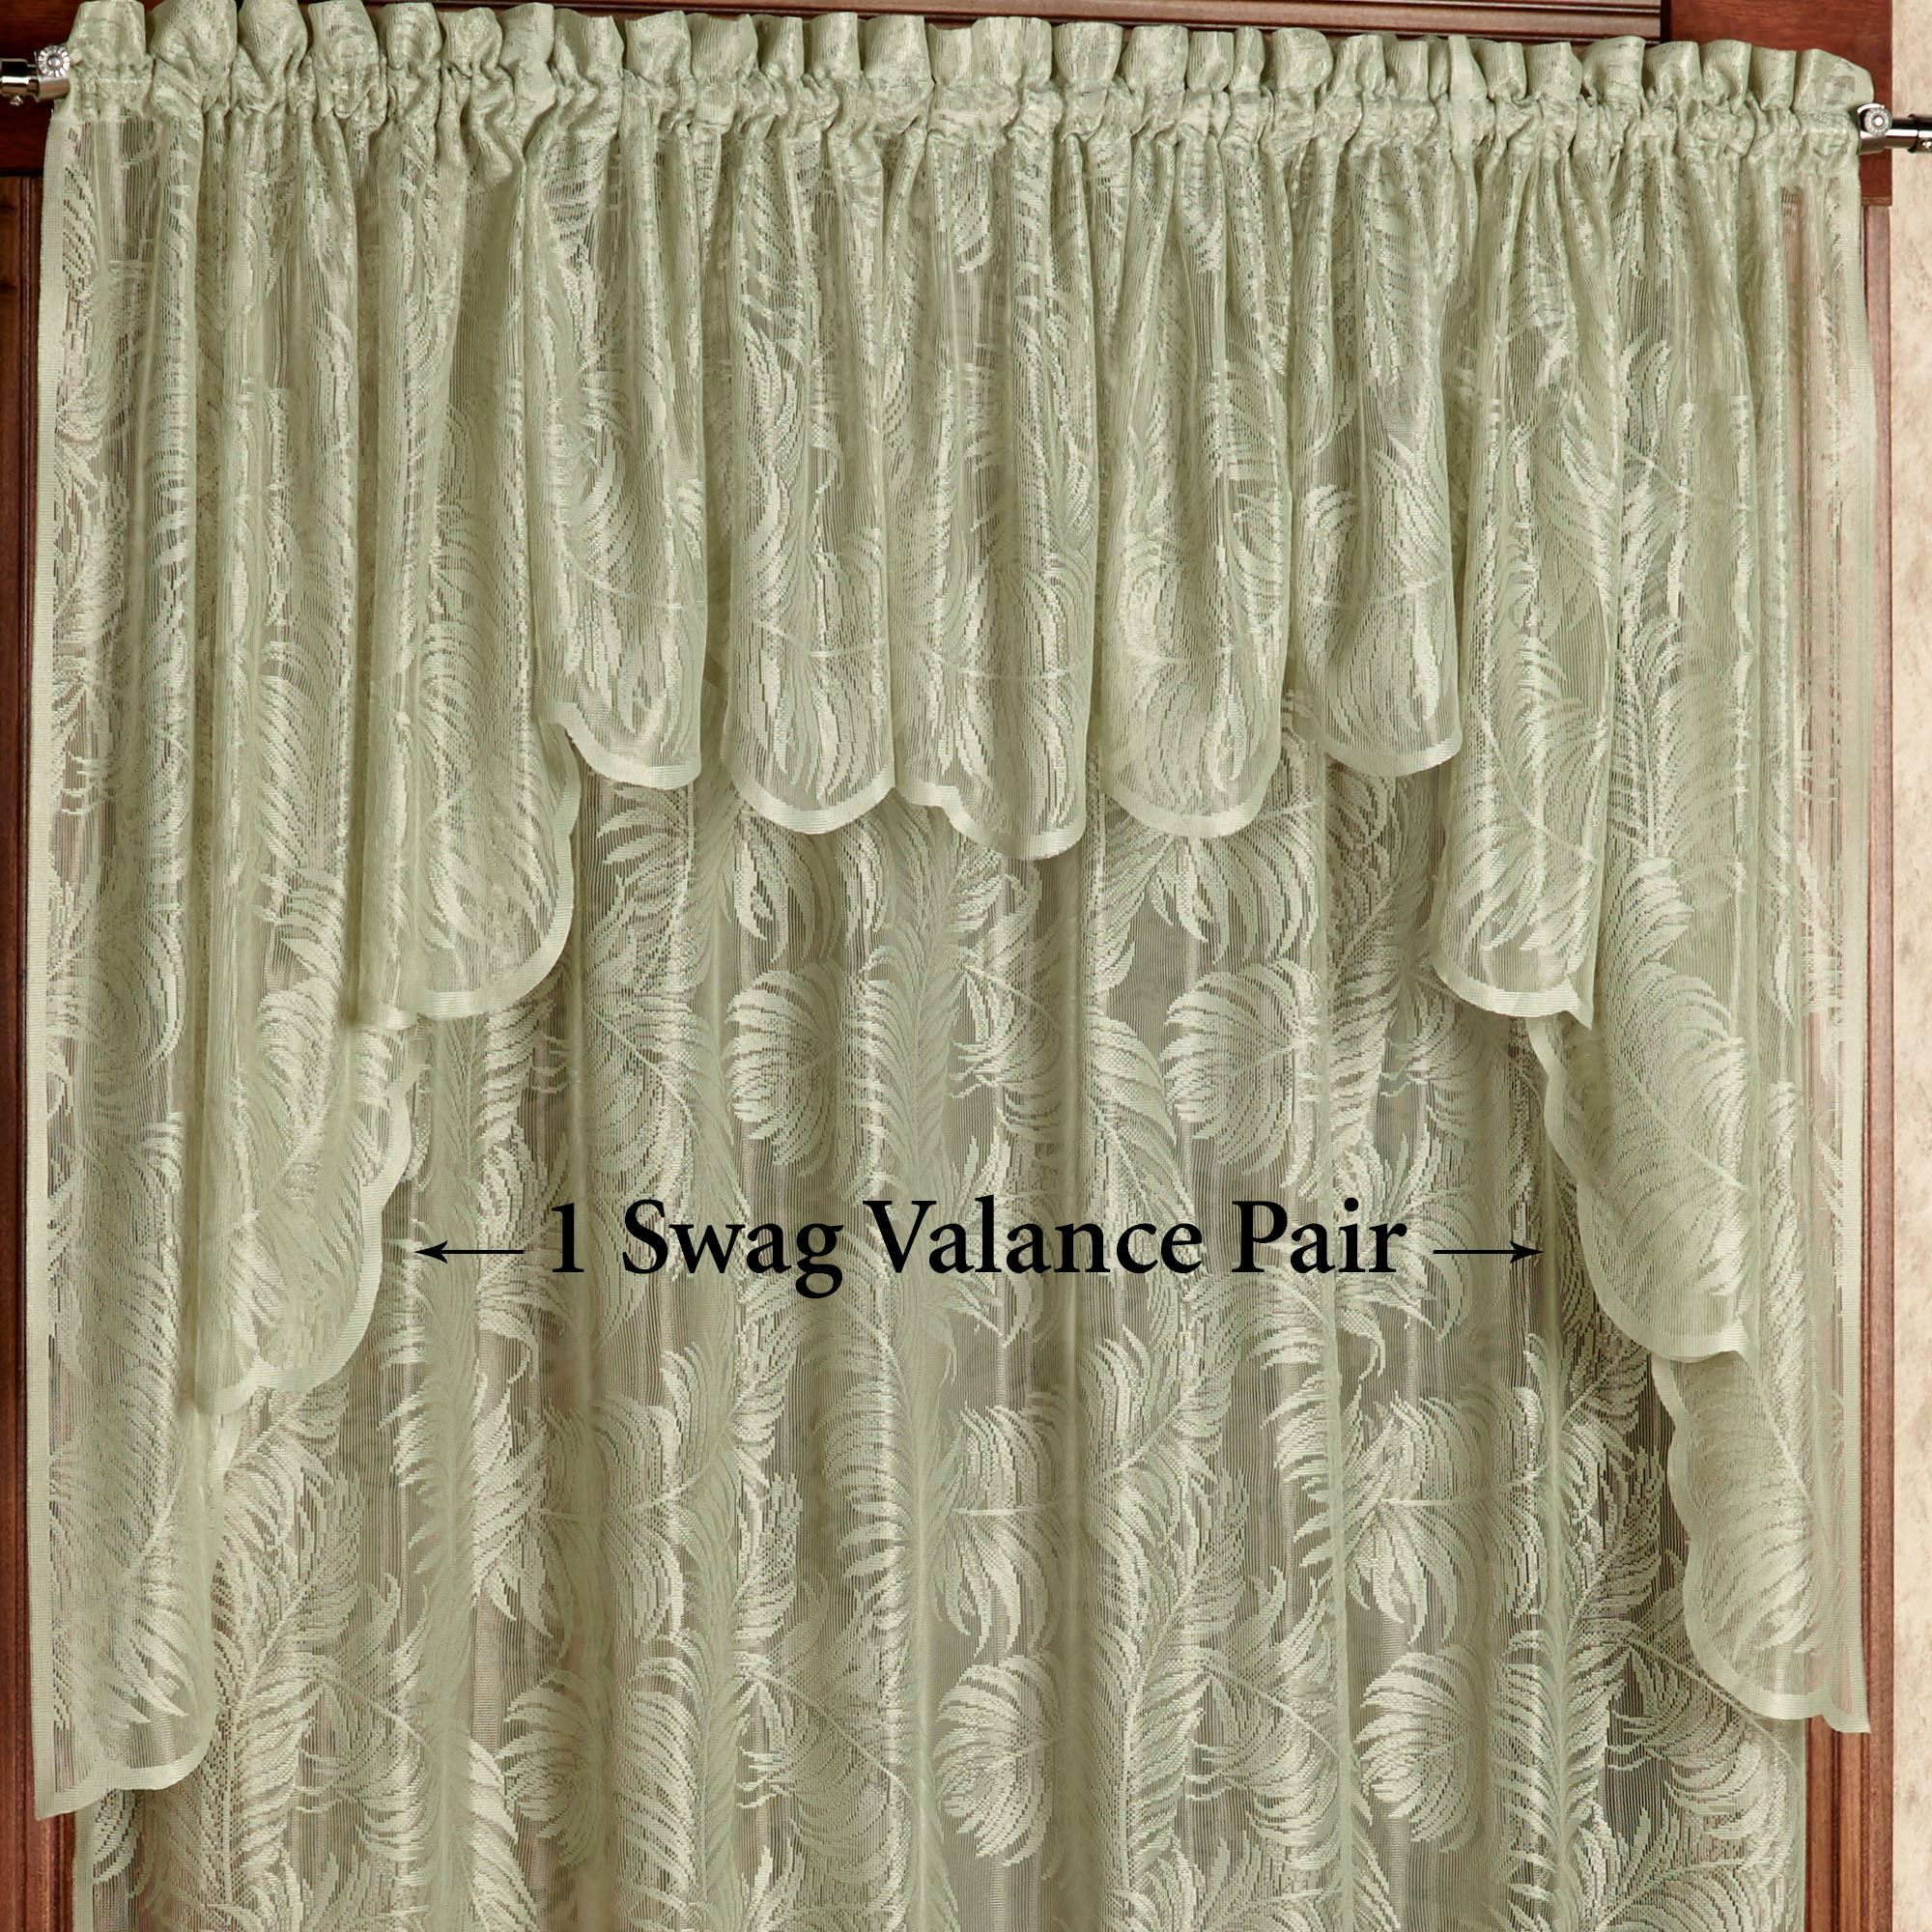 Greatest Palm Leaves Sage Lace Window Treatment PO94